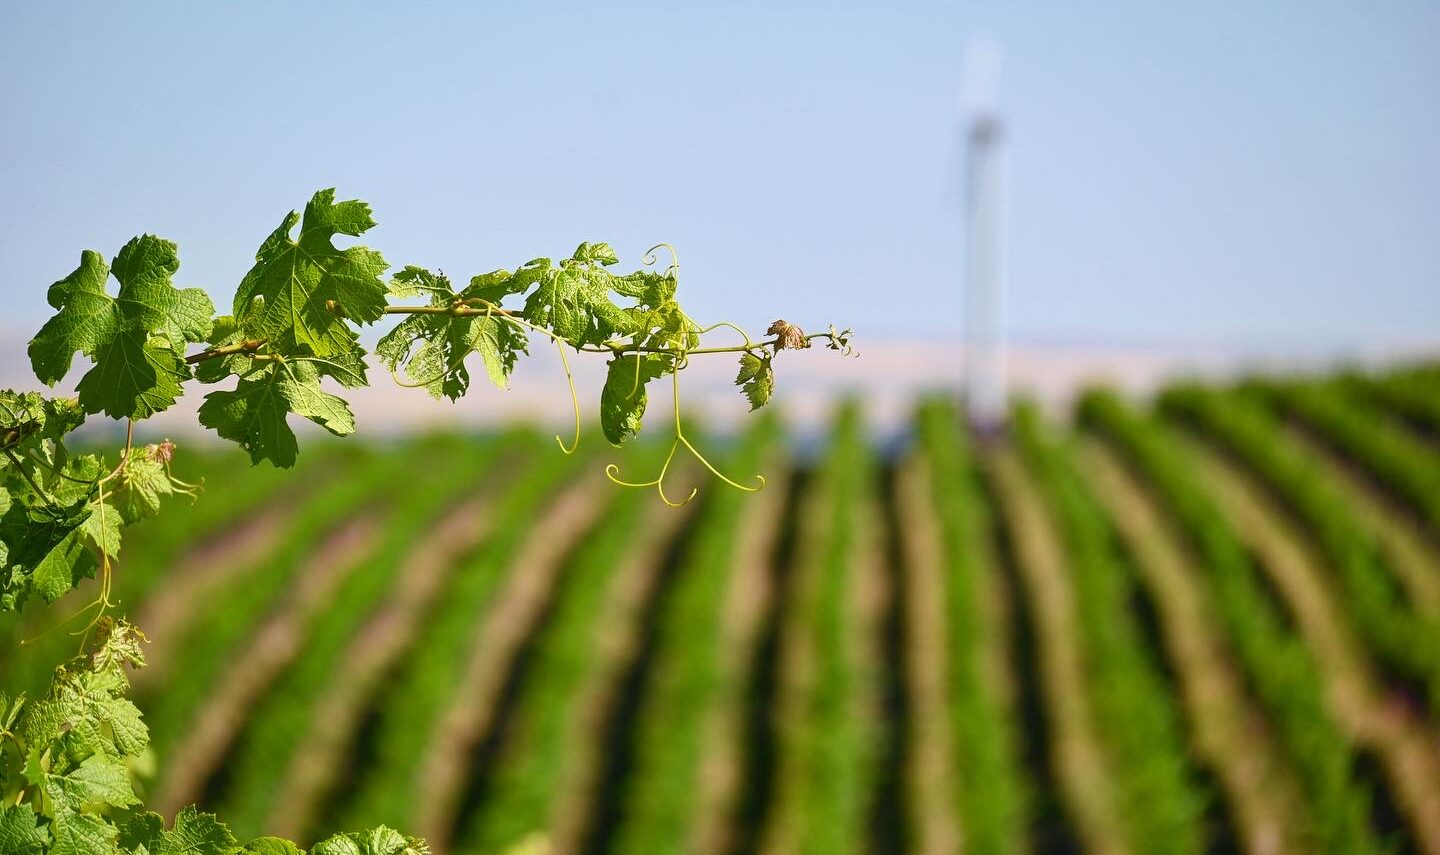 A close-up of a shoot on a grape vine in the foreground, with rows of green vines out of focus in hte background. The sky above is light blue.